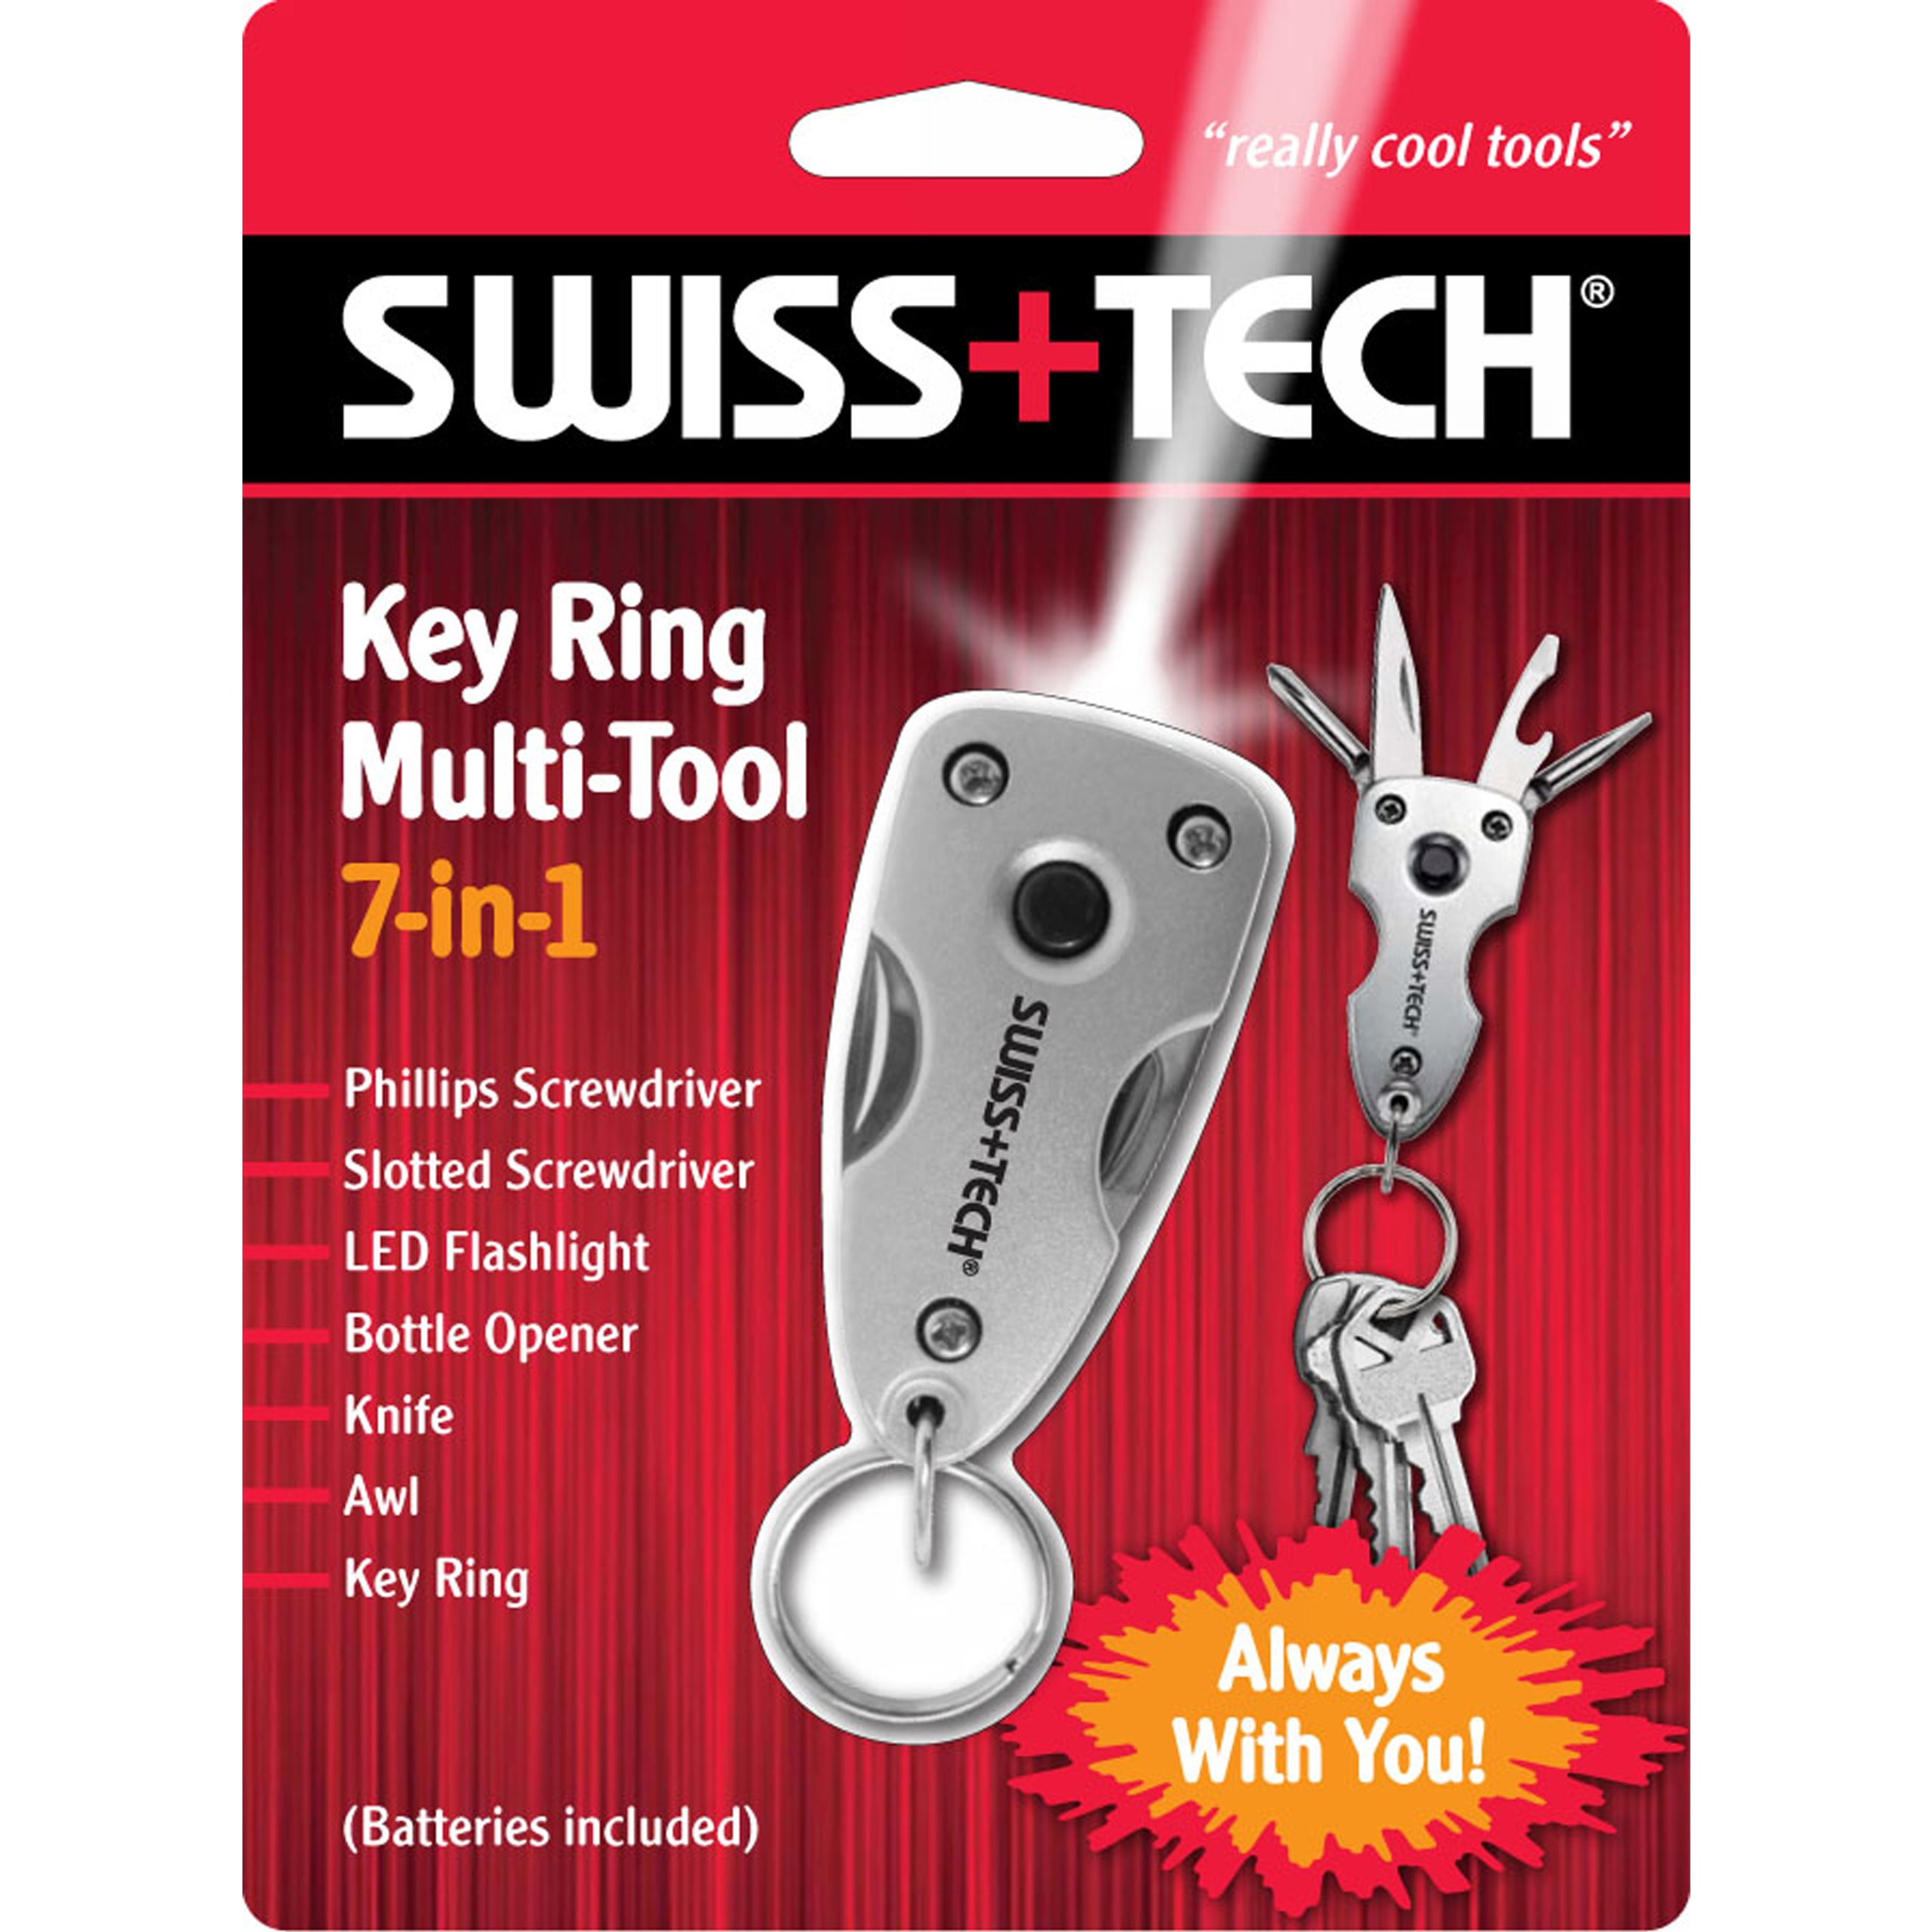 Swiss+Tech ST60300 Silver 7-in-1 Key Ring Multitool with LED Flashlight for Auto Safety, Outdoors, Camping